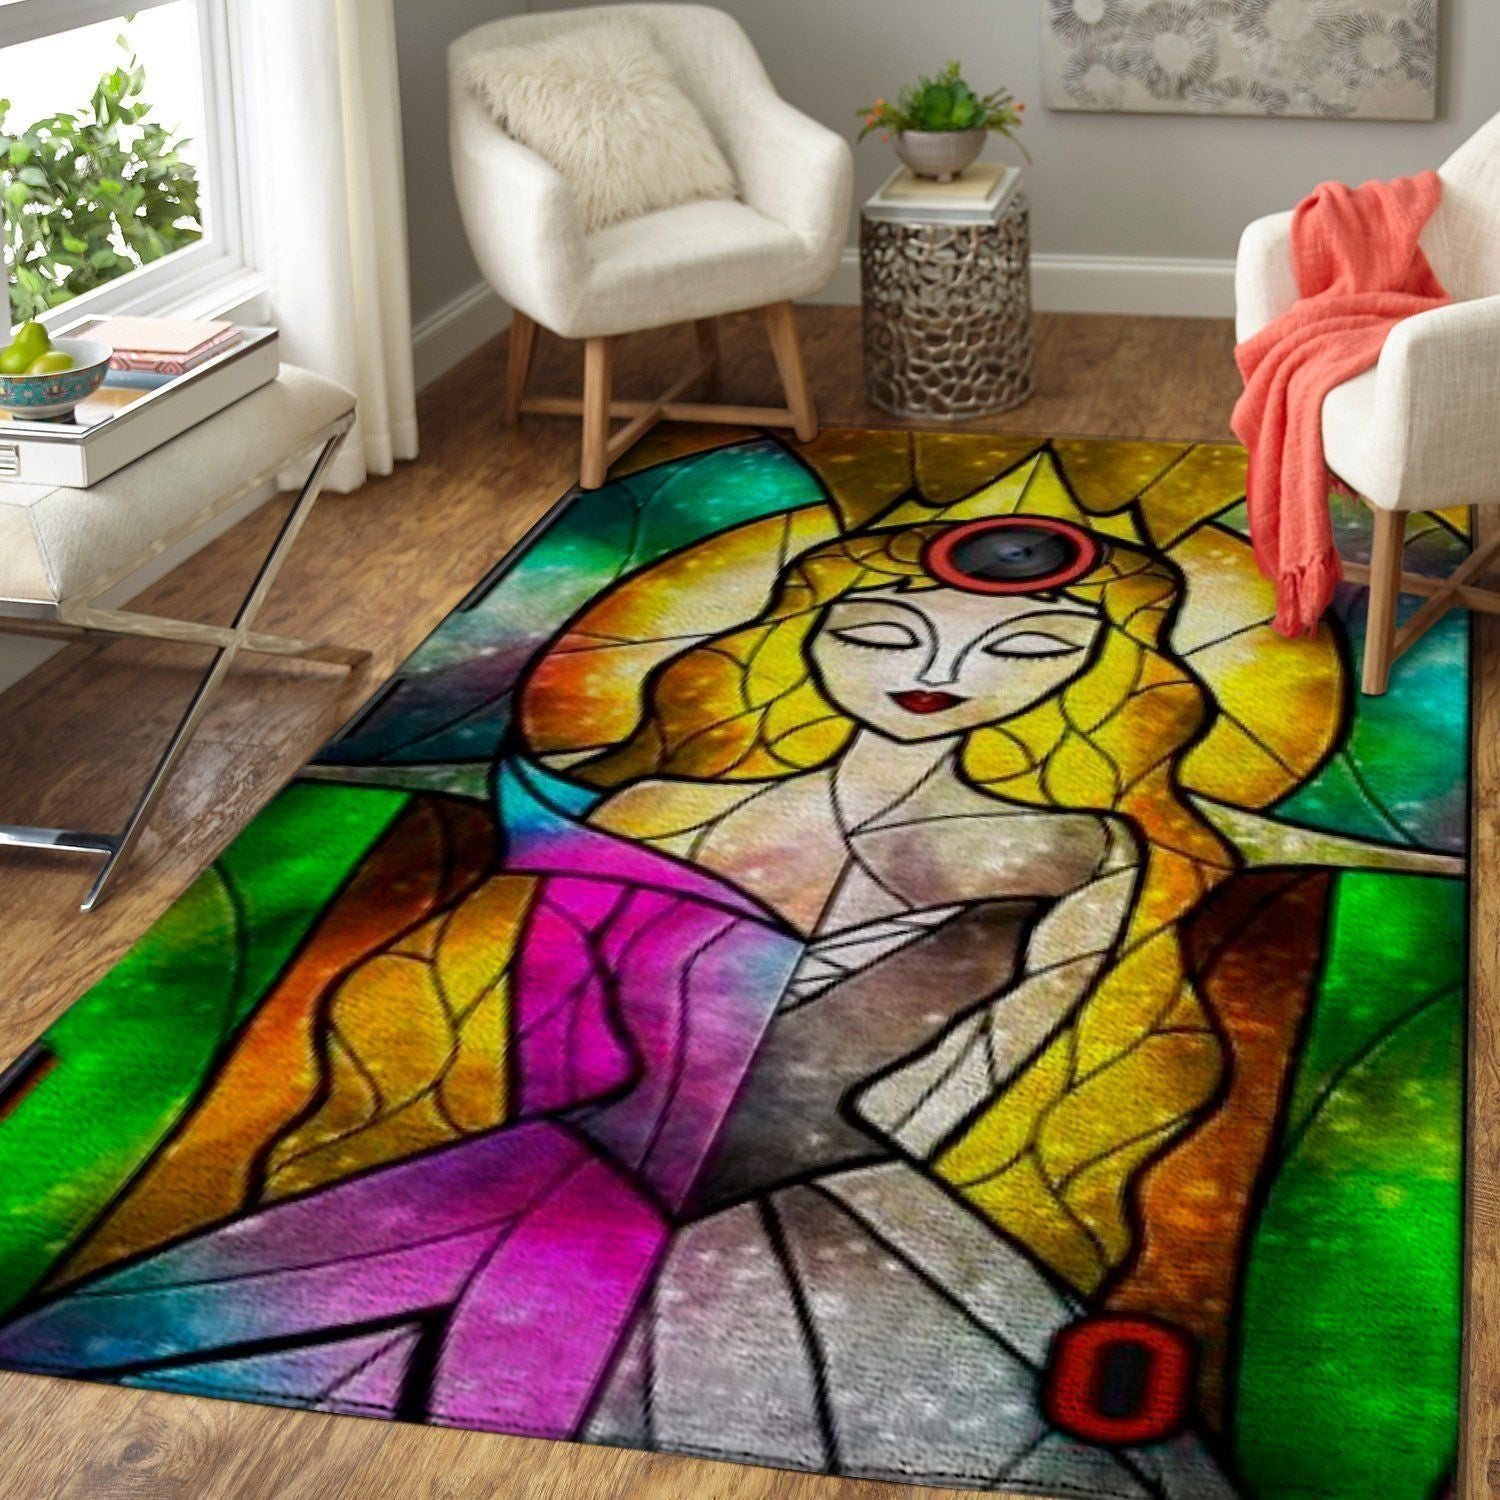 Disney Princess Area Rugs Disney Cartoons Carpet Living Room Carpet, Custom Floor Decor 2